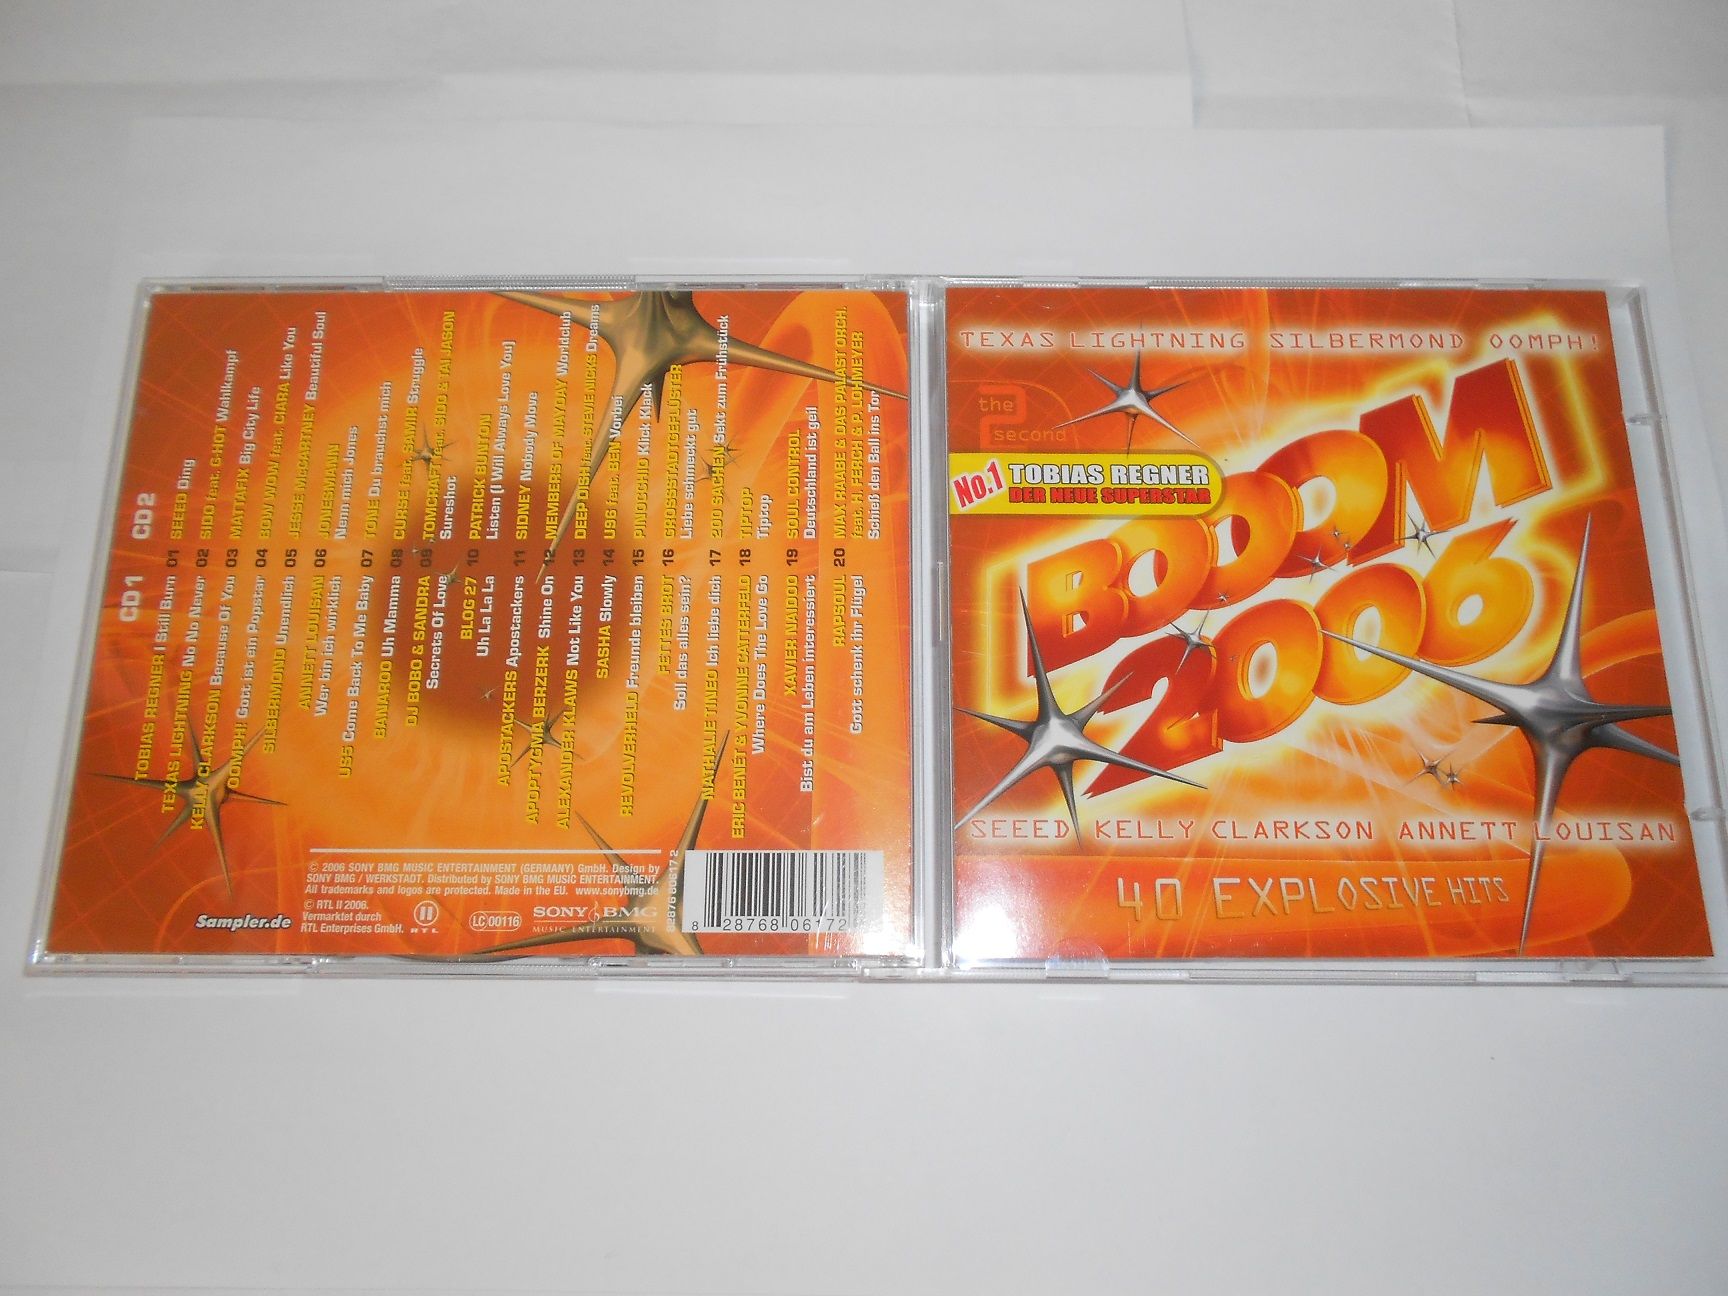 V/A - Booom 2006 - The Second